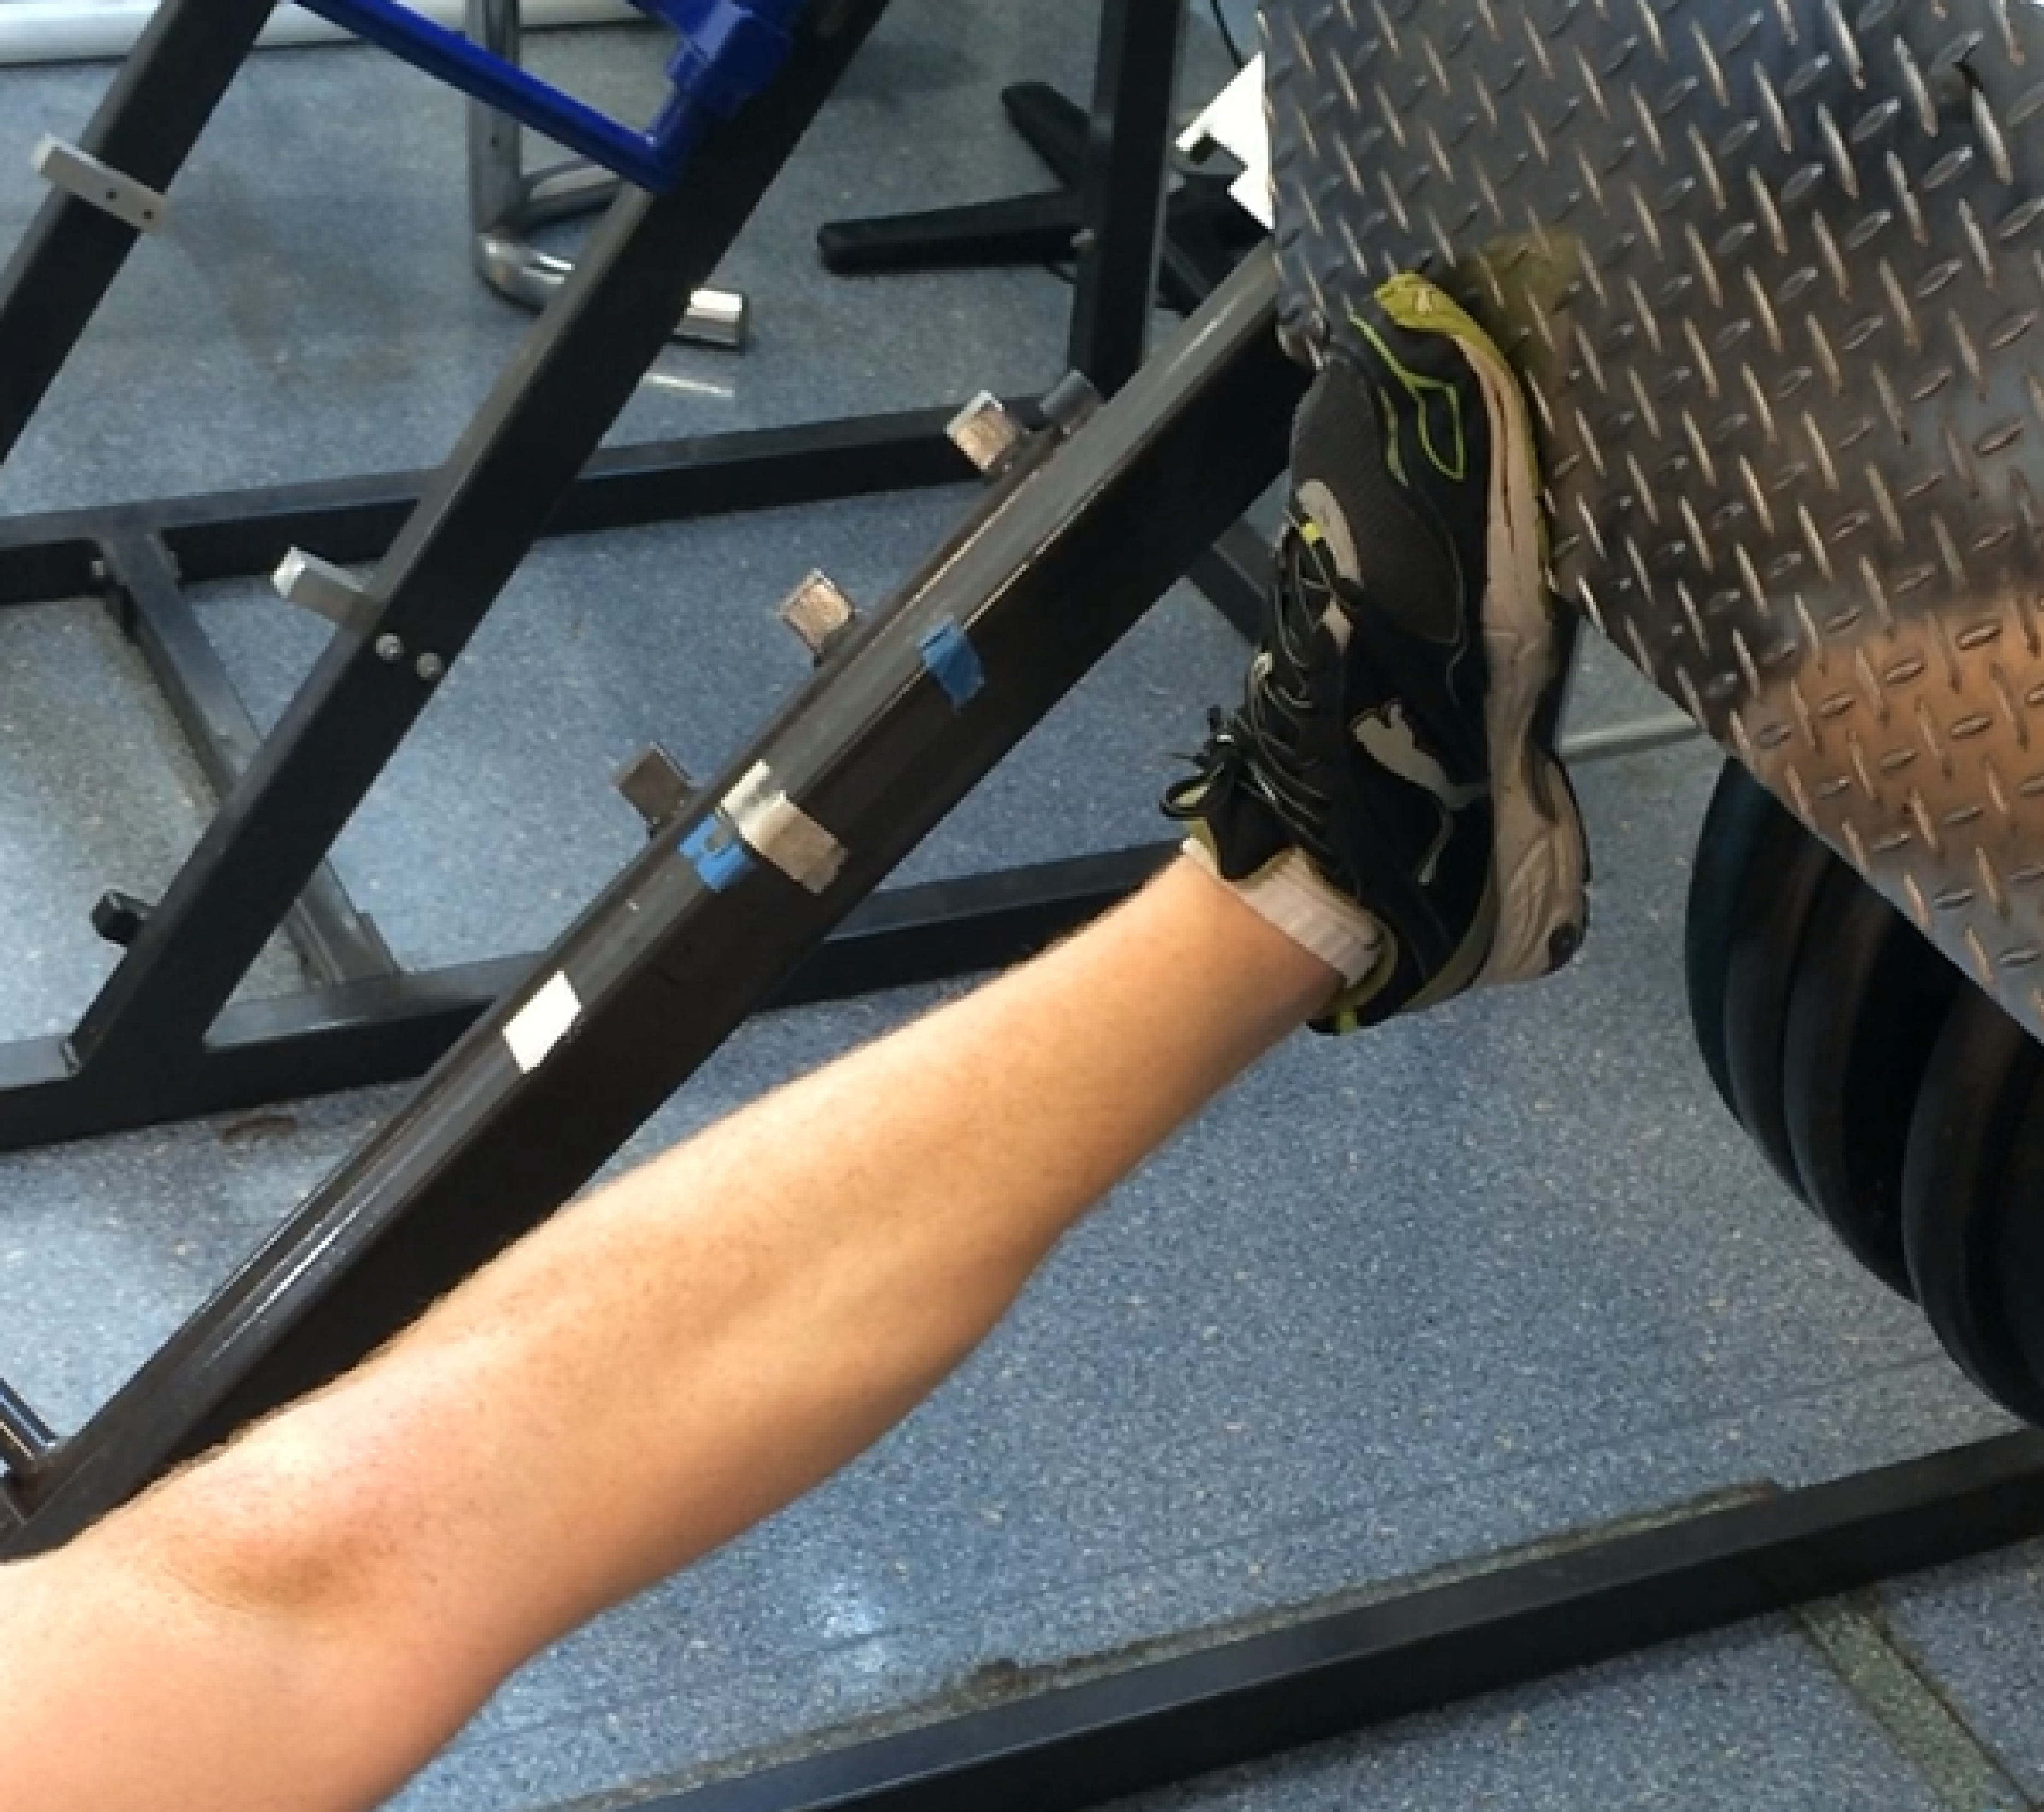 Combining functional exercises with resistance training